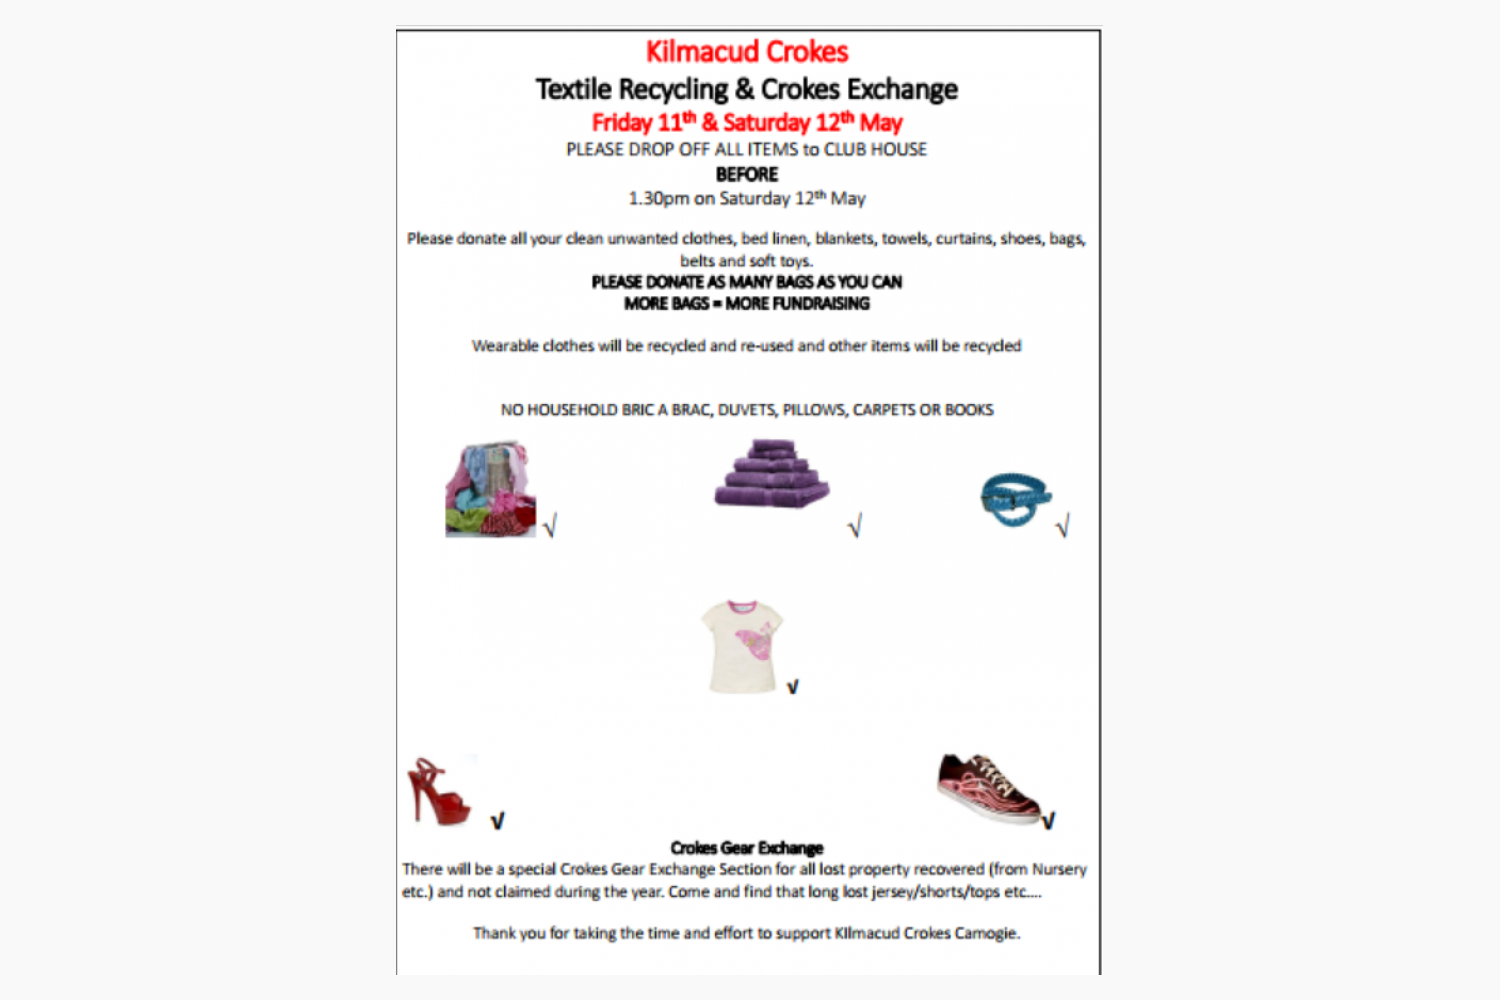 Kilmacud Crokes Textile Recycling & Crokes Exchange Friday 11th